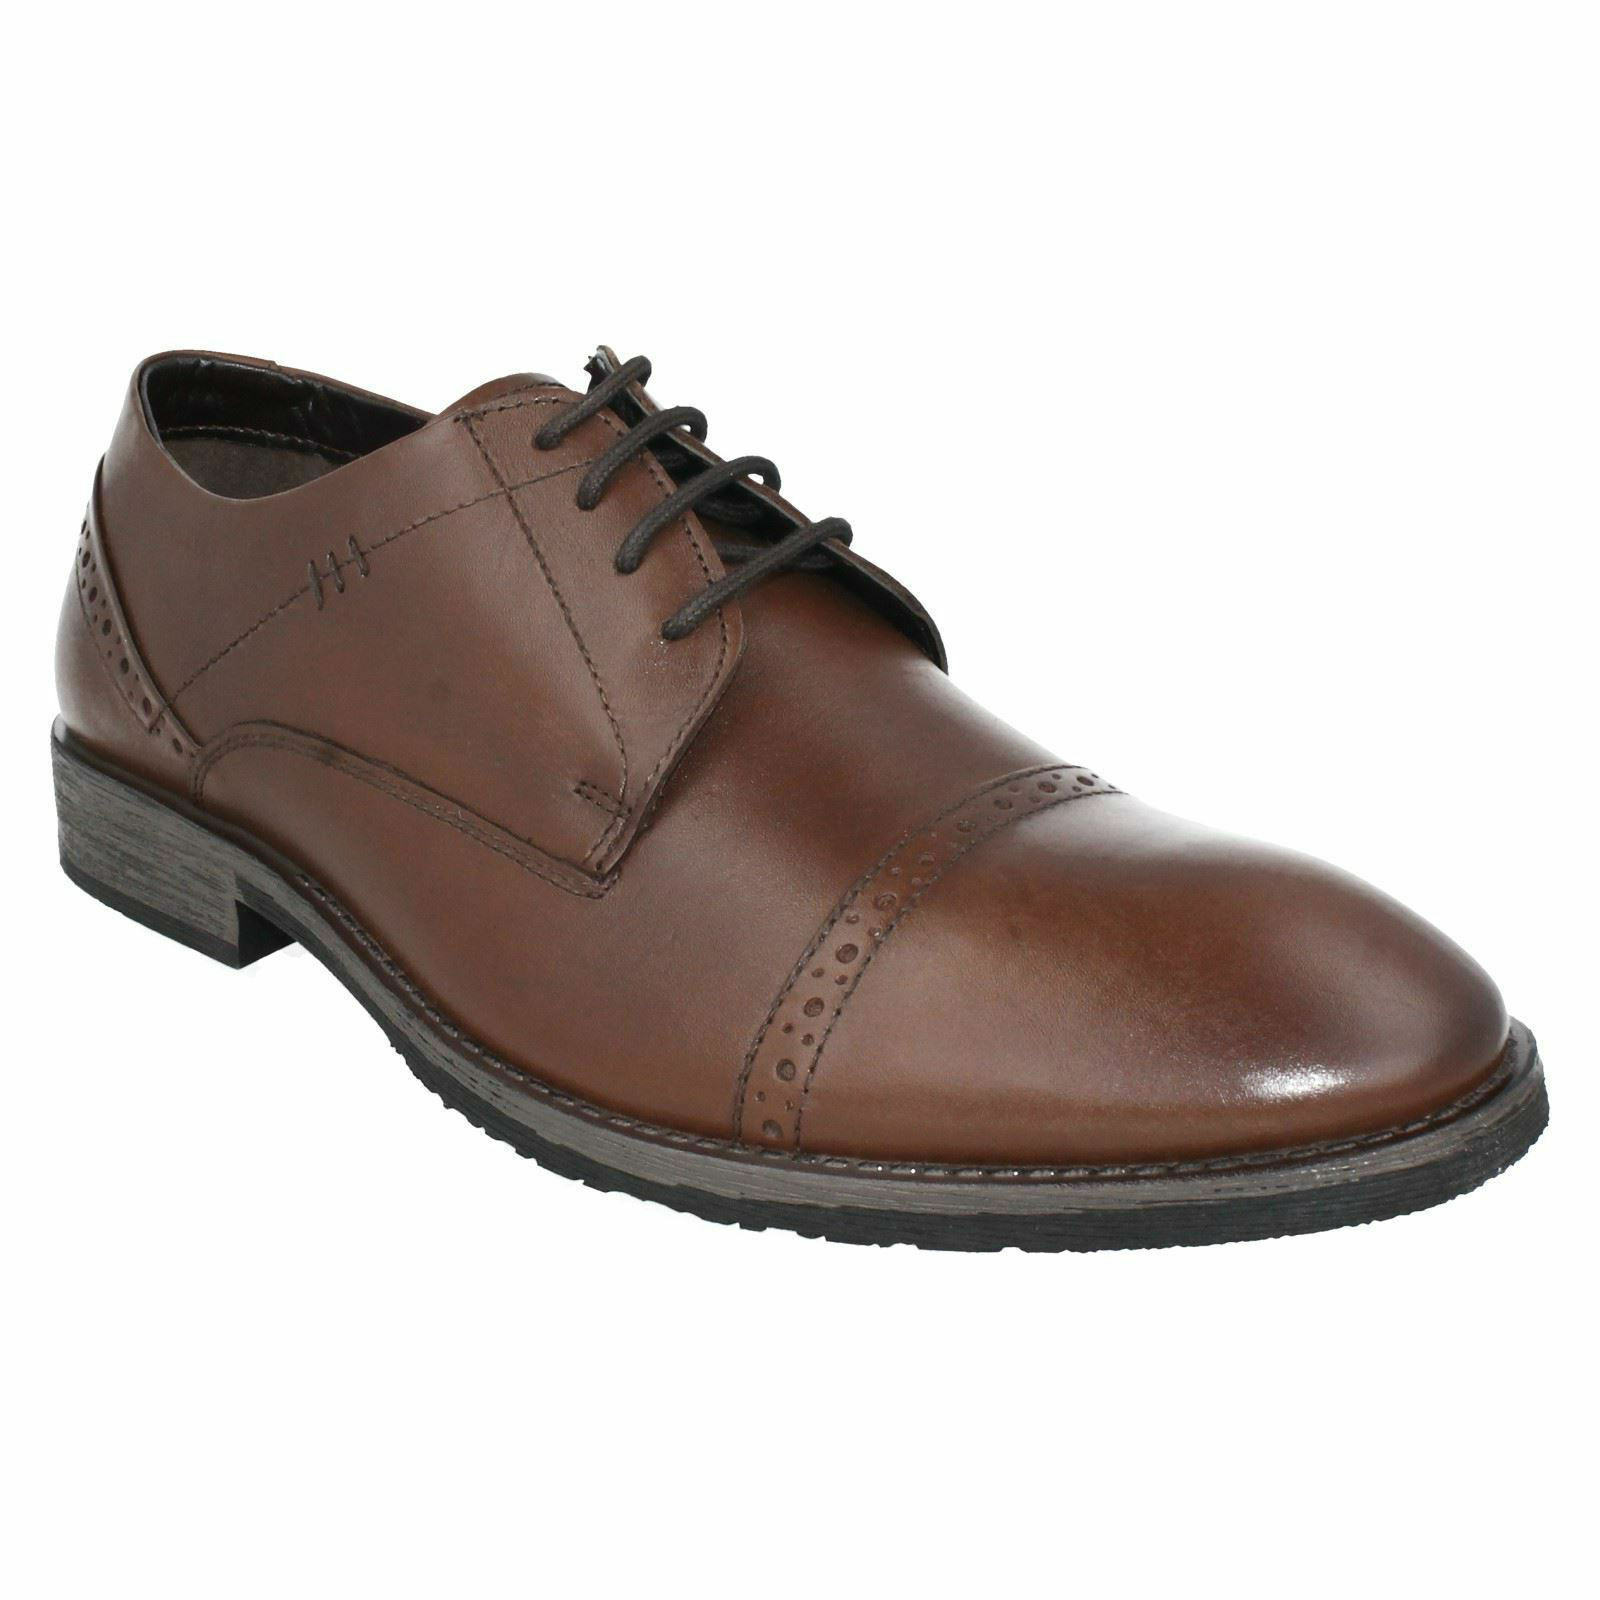 MENS HUSH PUPPIES LACE UP LEATHER braun BROGUE SMART FORMAL schuhe CRAIG LUGANDA